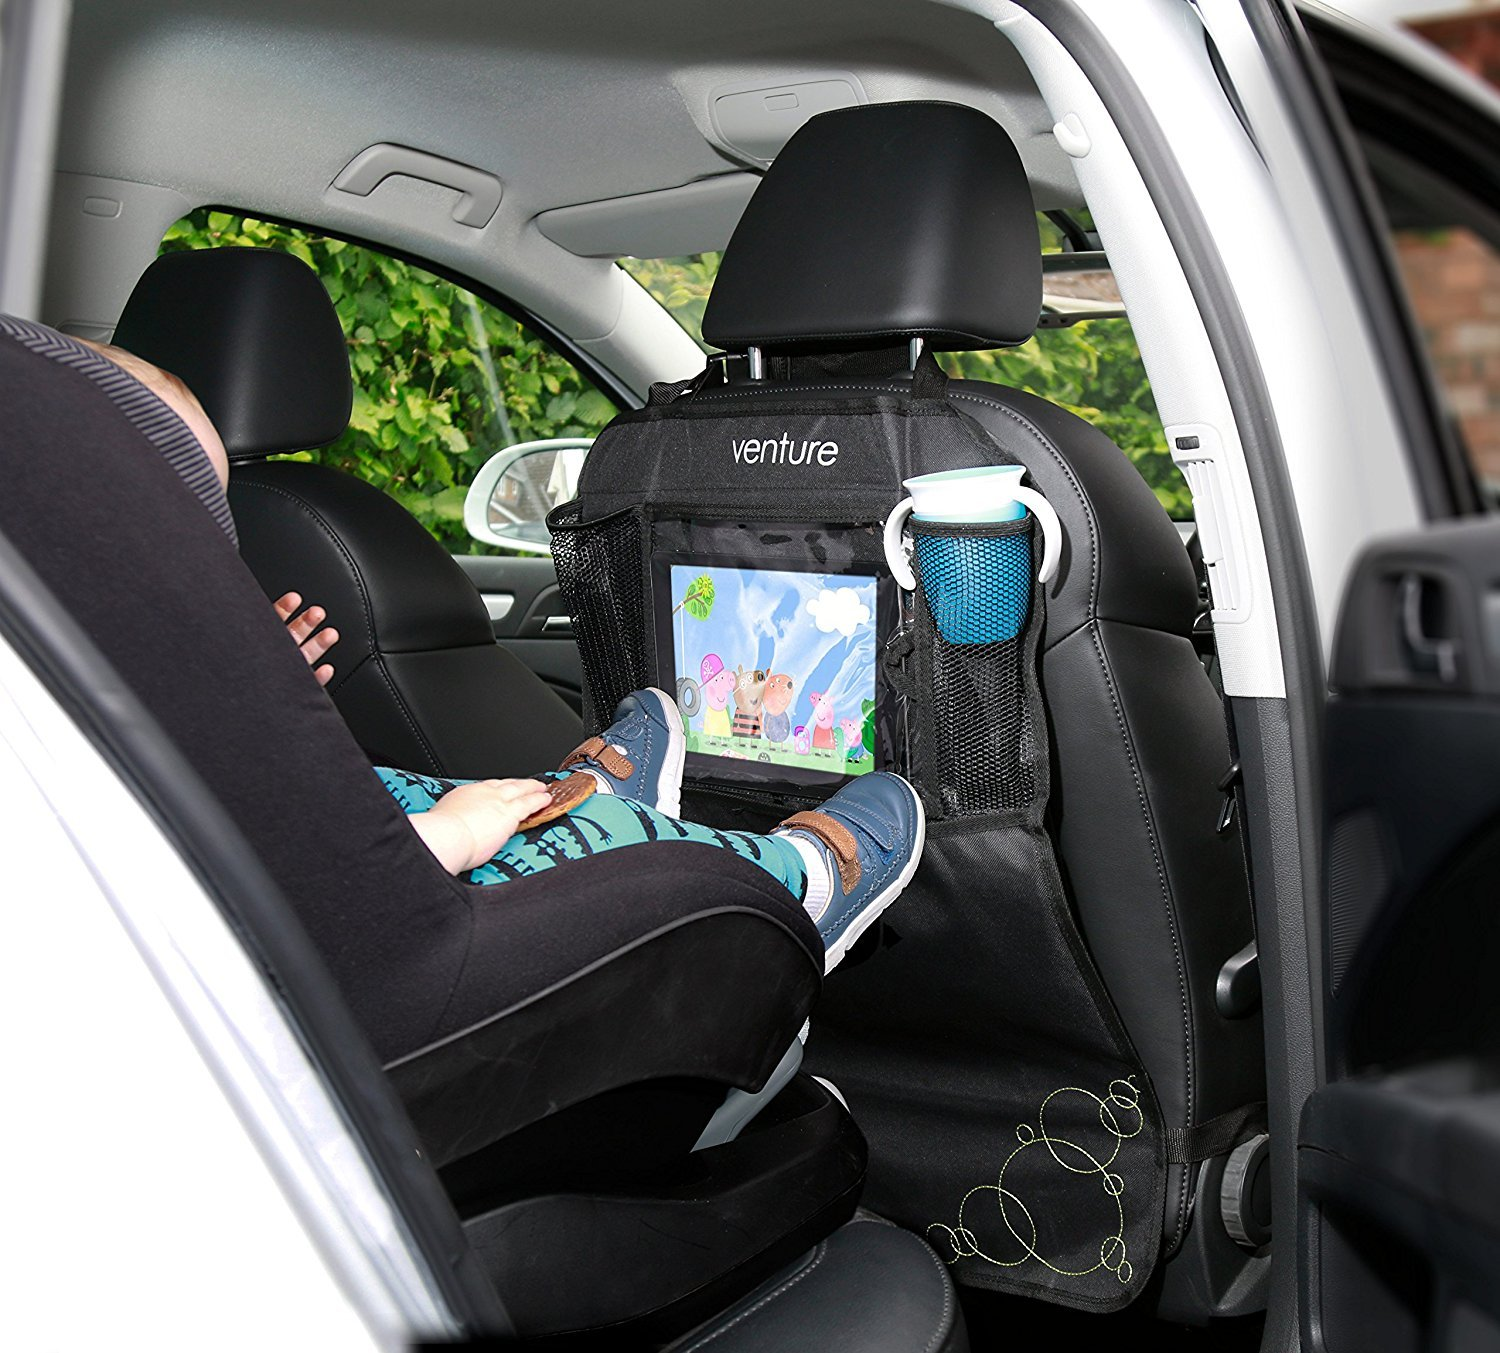 ActiVue Touch | 2 x Heavy Duty Kick Mats With iPad | Tablet Holder | Car Seat Protector | Car Seat Cover Venture ActiVue | Touch